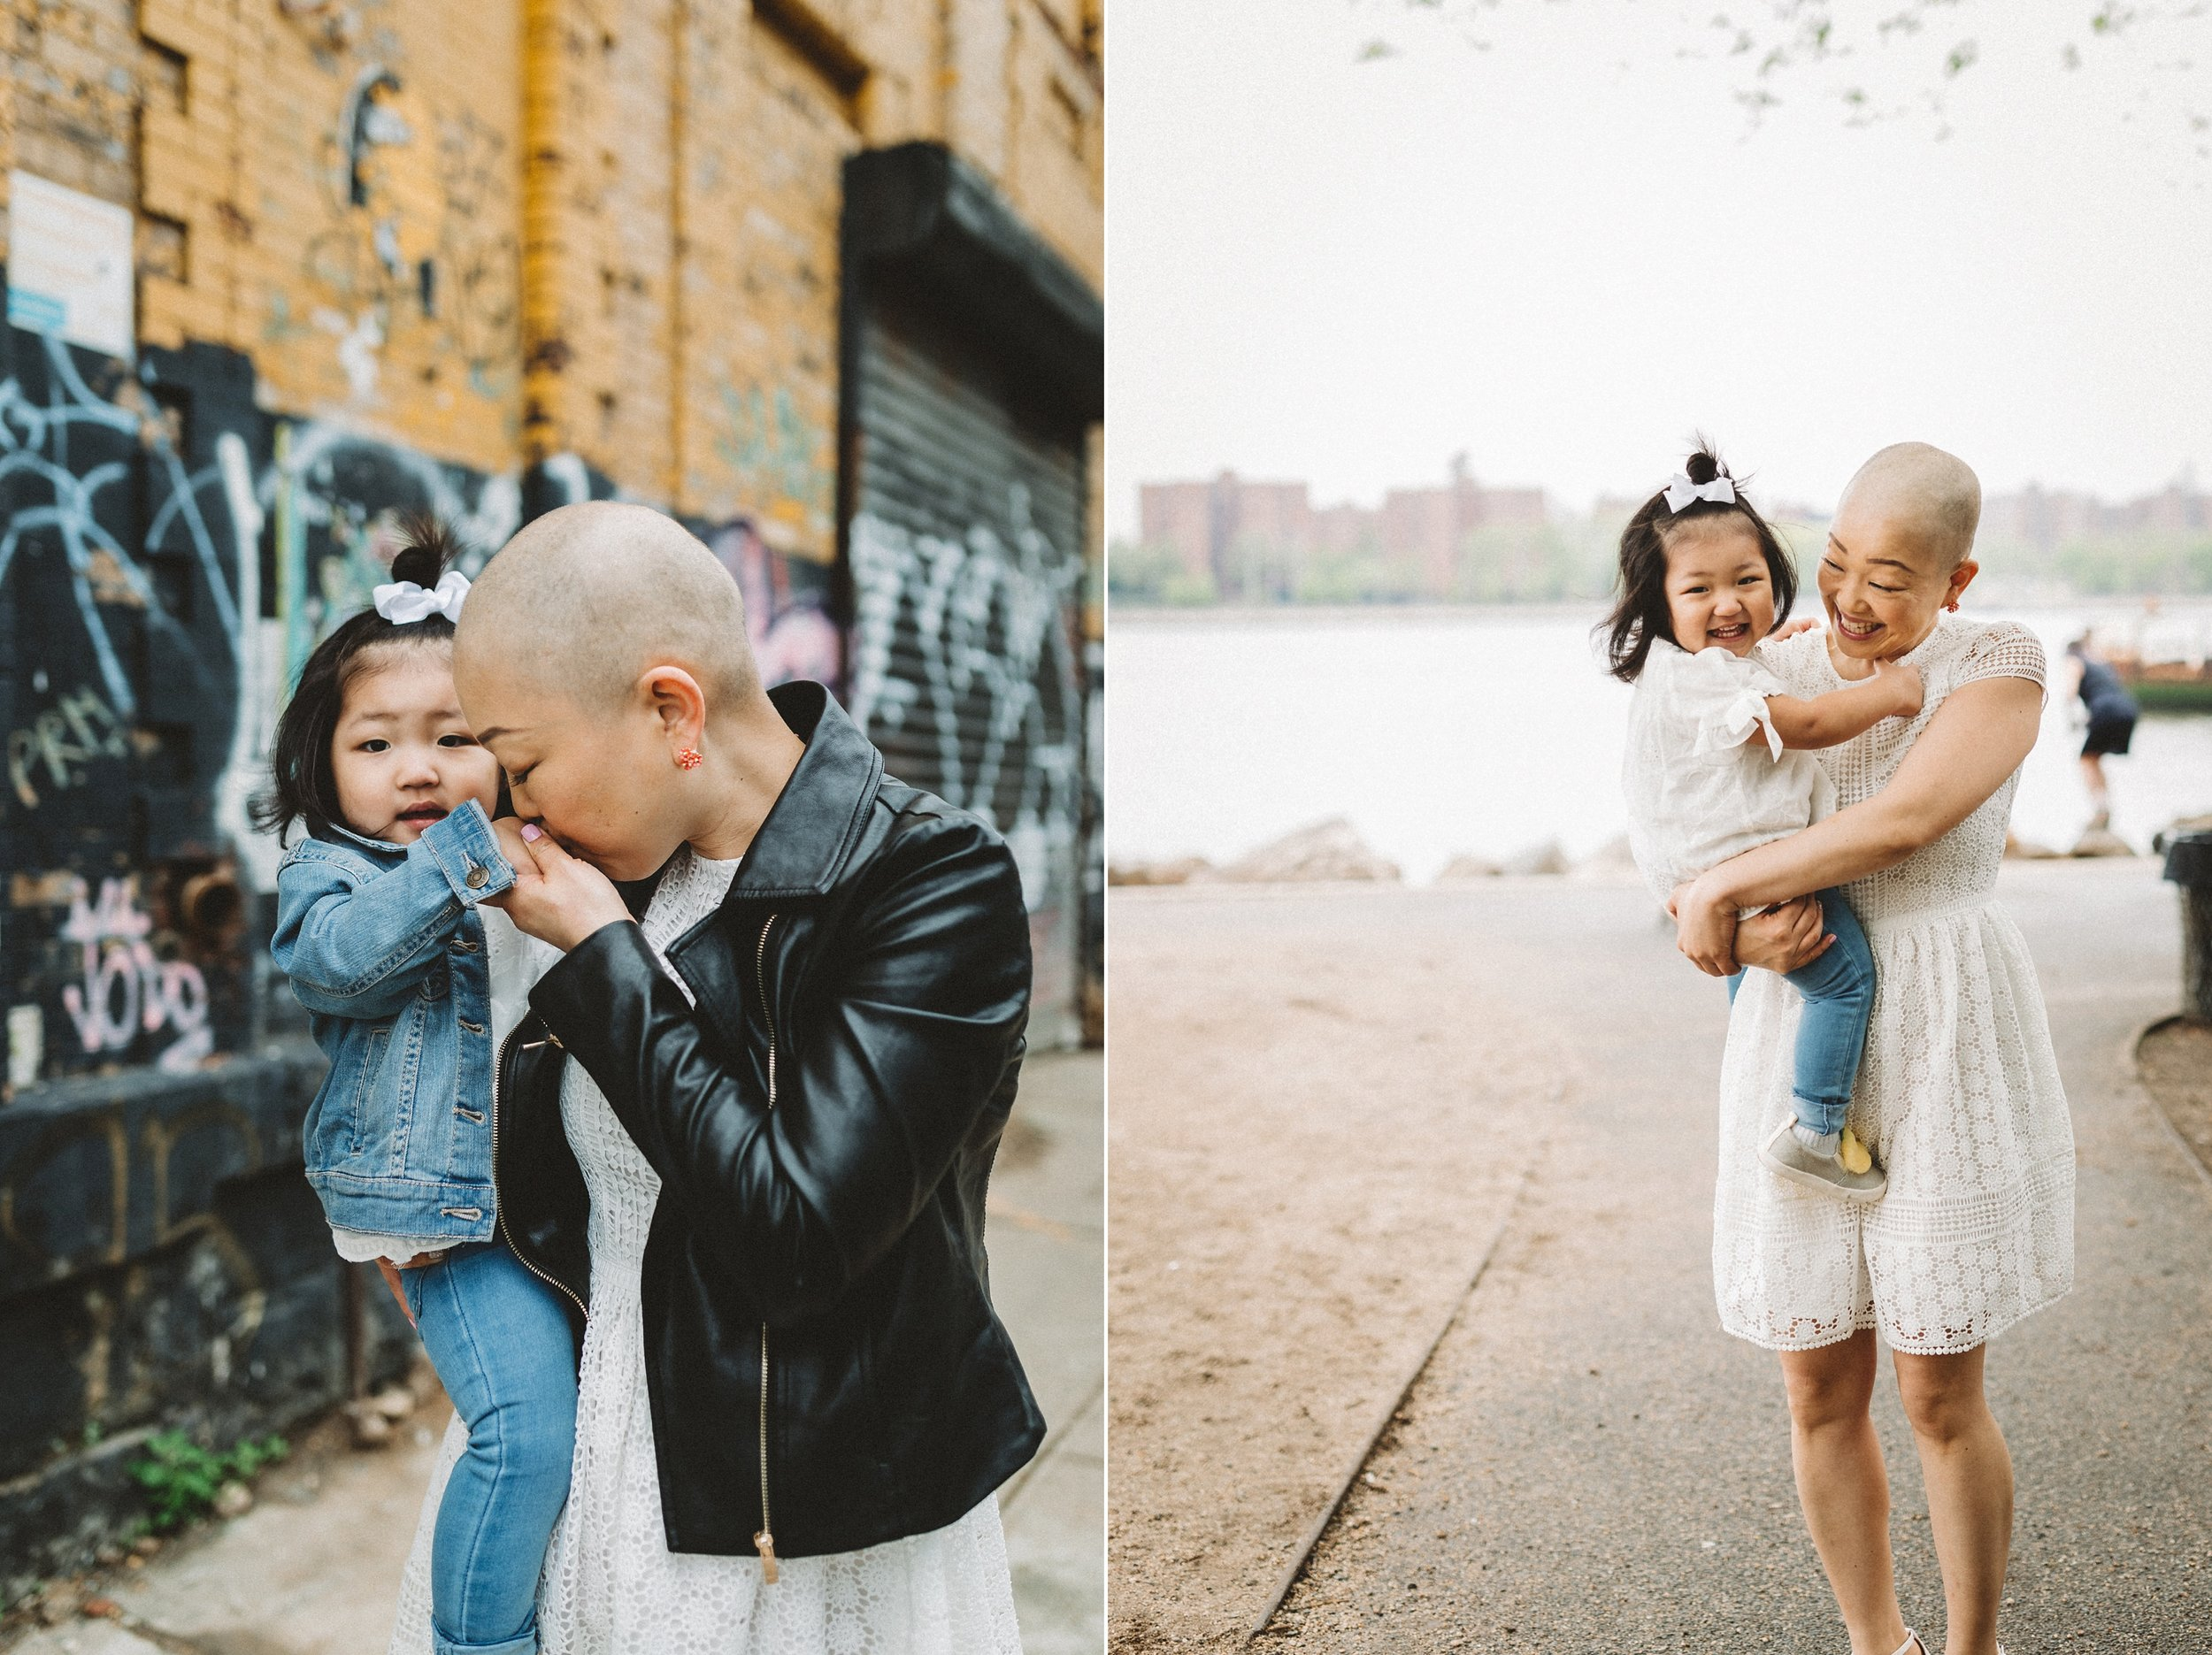 greenpoint family photo session_0007.jpg